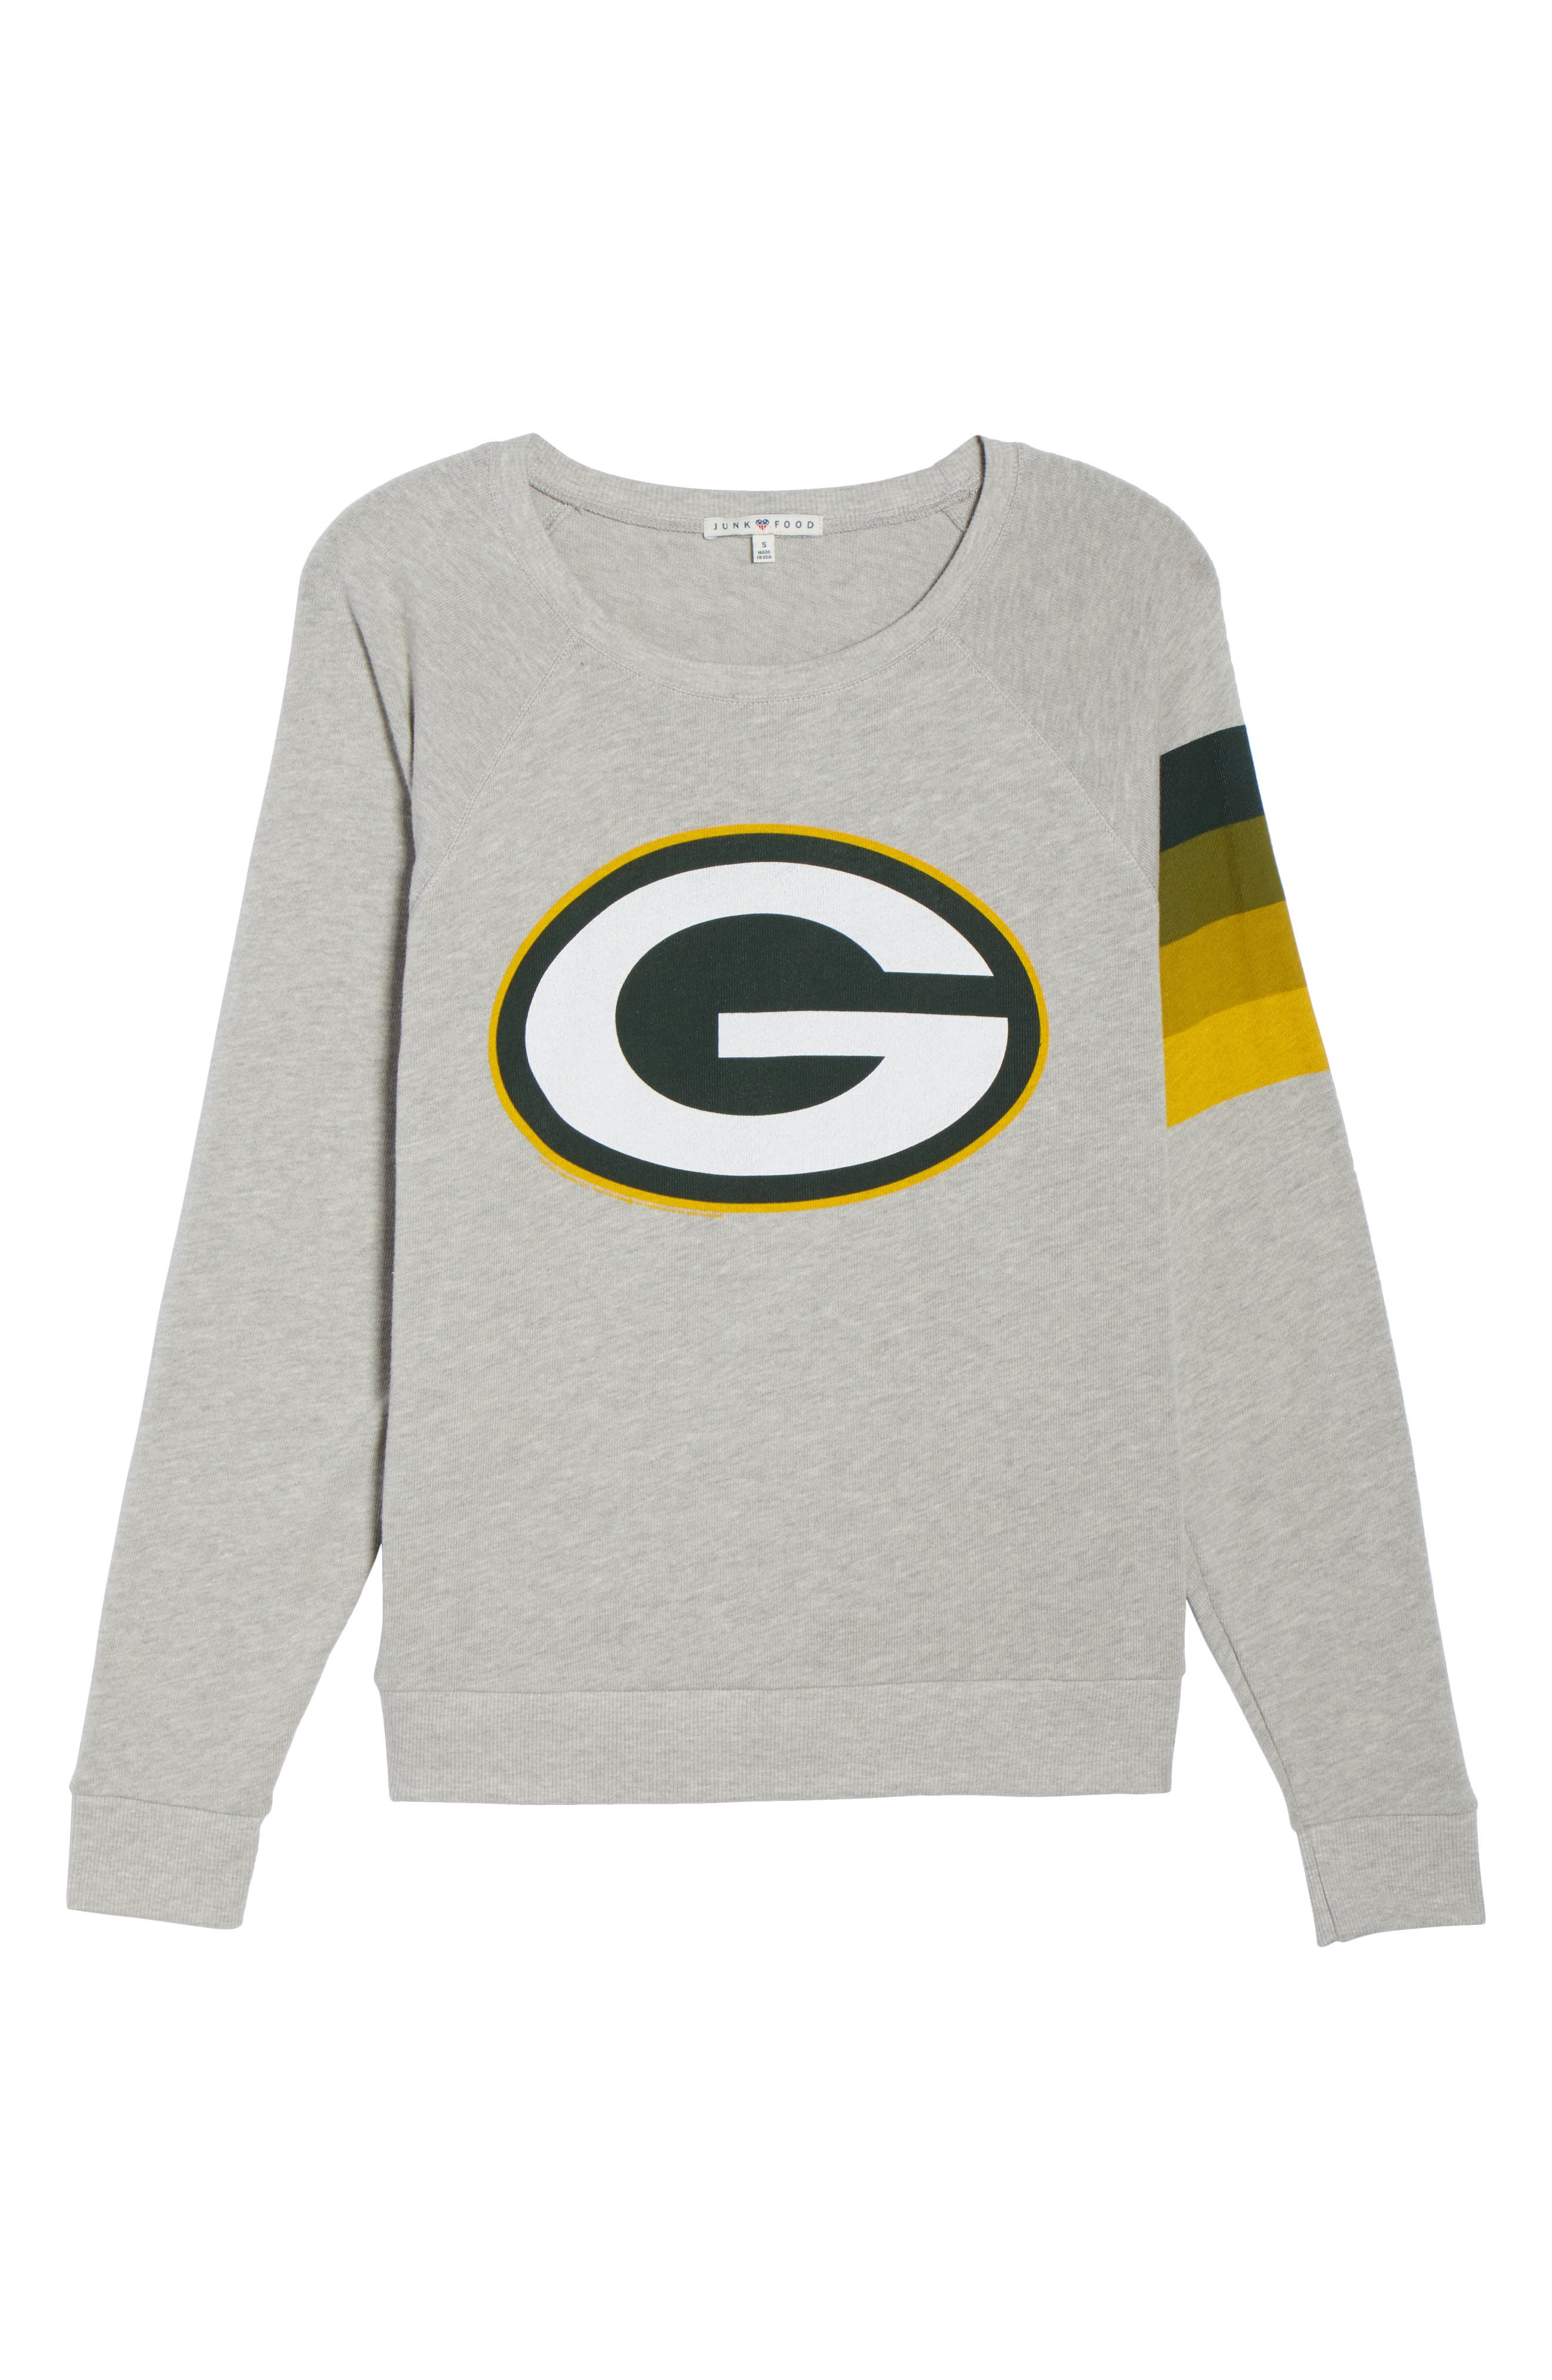 NF Green Bay Packers Hacci Sweatshirt,                             Alternate thumbnail 6, color,                             030